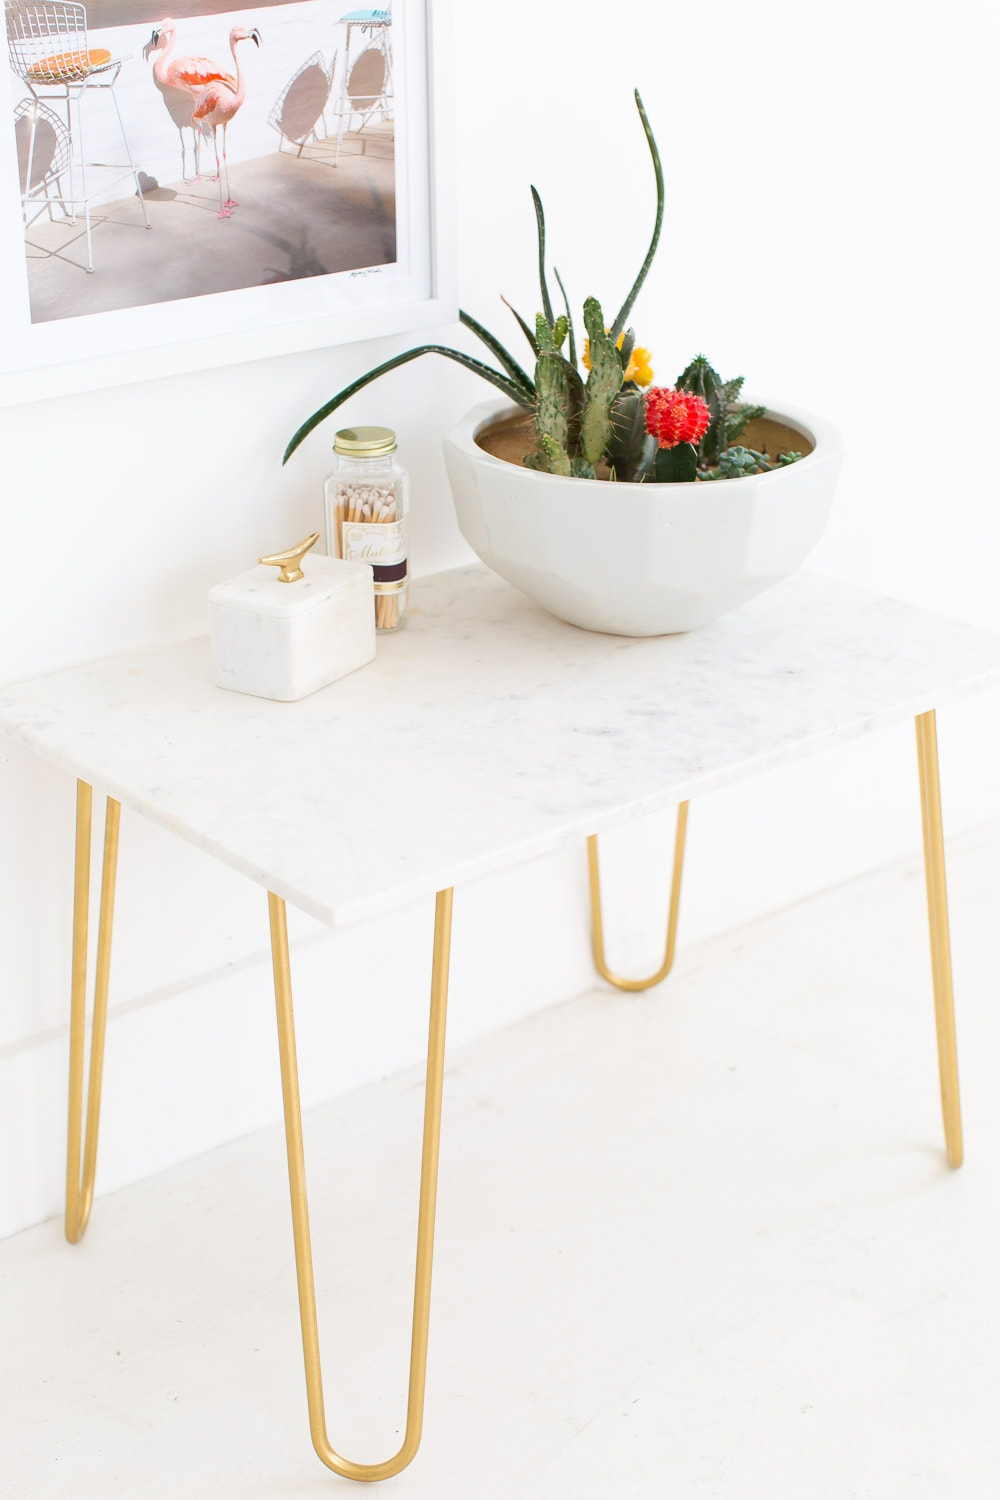 Gold Accent Table with Marble Top sugar and cloth - home decor ideas  by Houston Blogger Ashley Rose #homedecor #decor #gold #diy #doityourself #tabletop #marble #sidetable #table